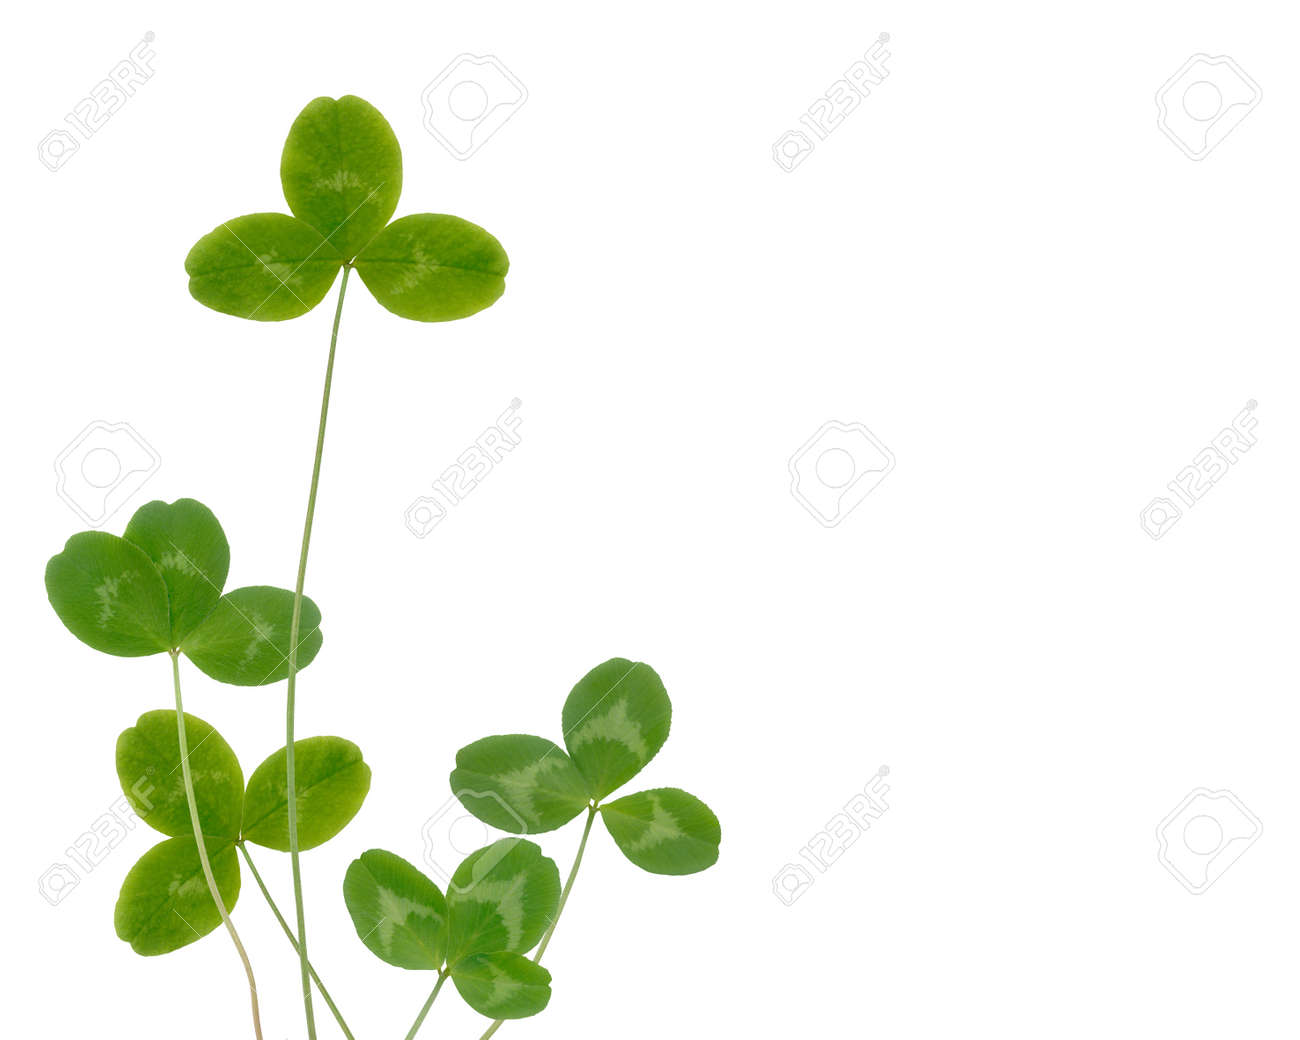 clover leaves on a white background Stock Photo - 18395433